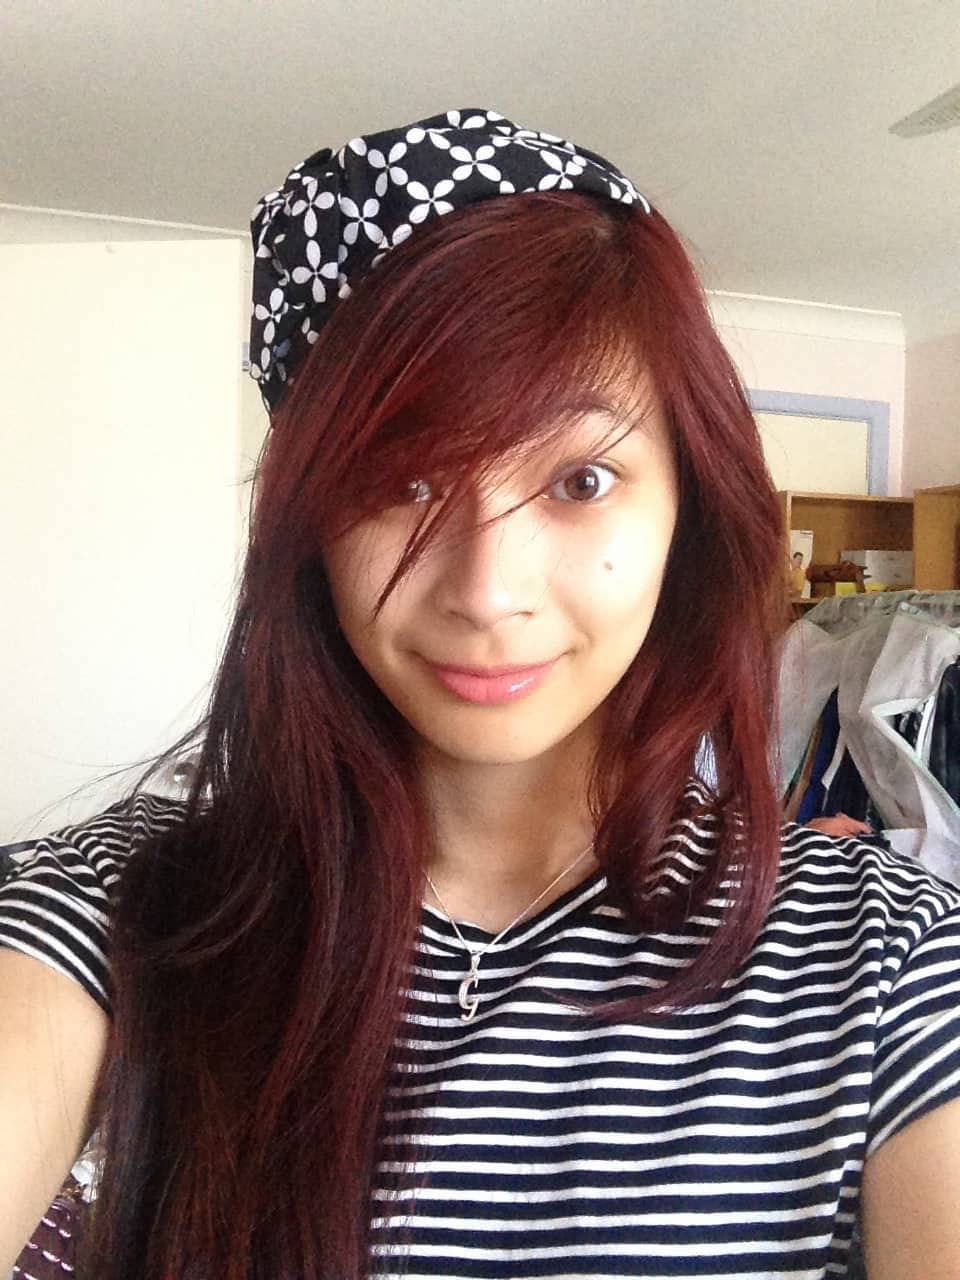 A woman with long red hair, taking a selfie. She has a black and white headband on and is wearing a black and white striped shirt.